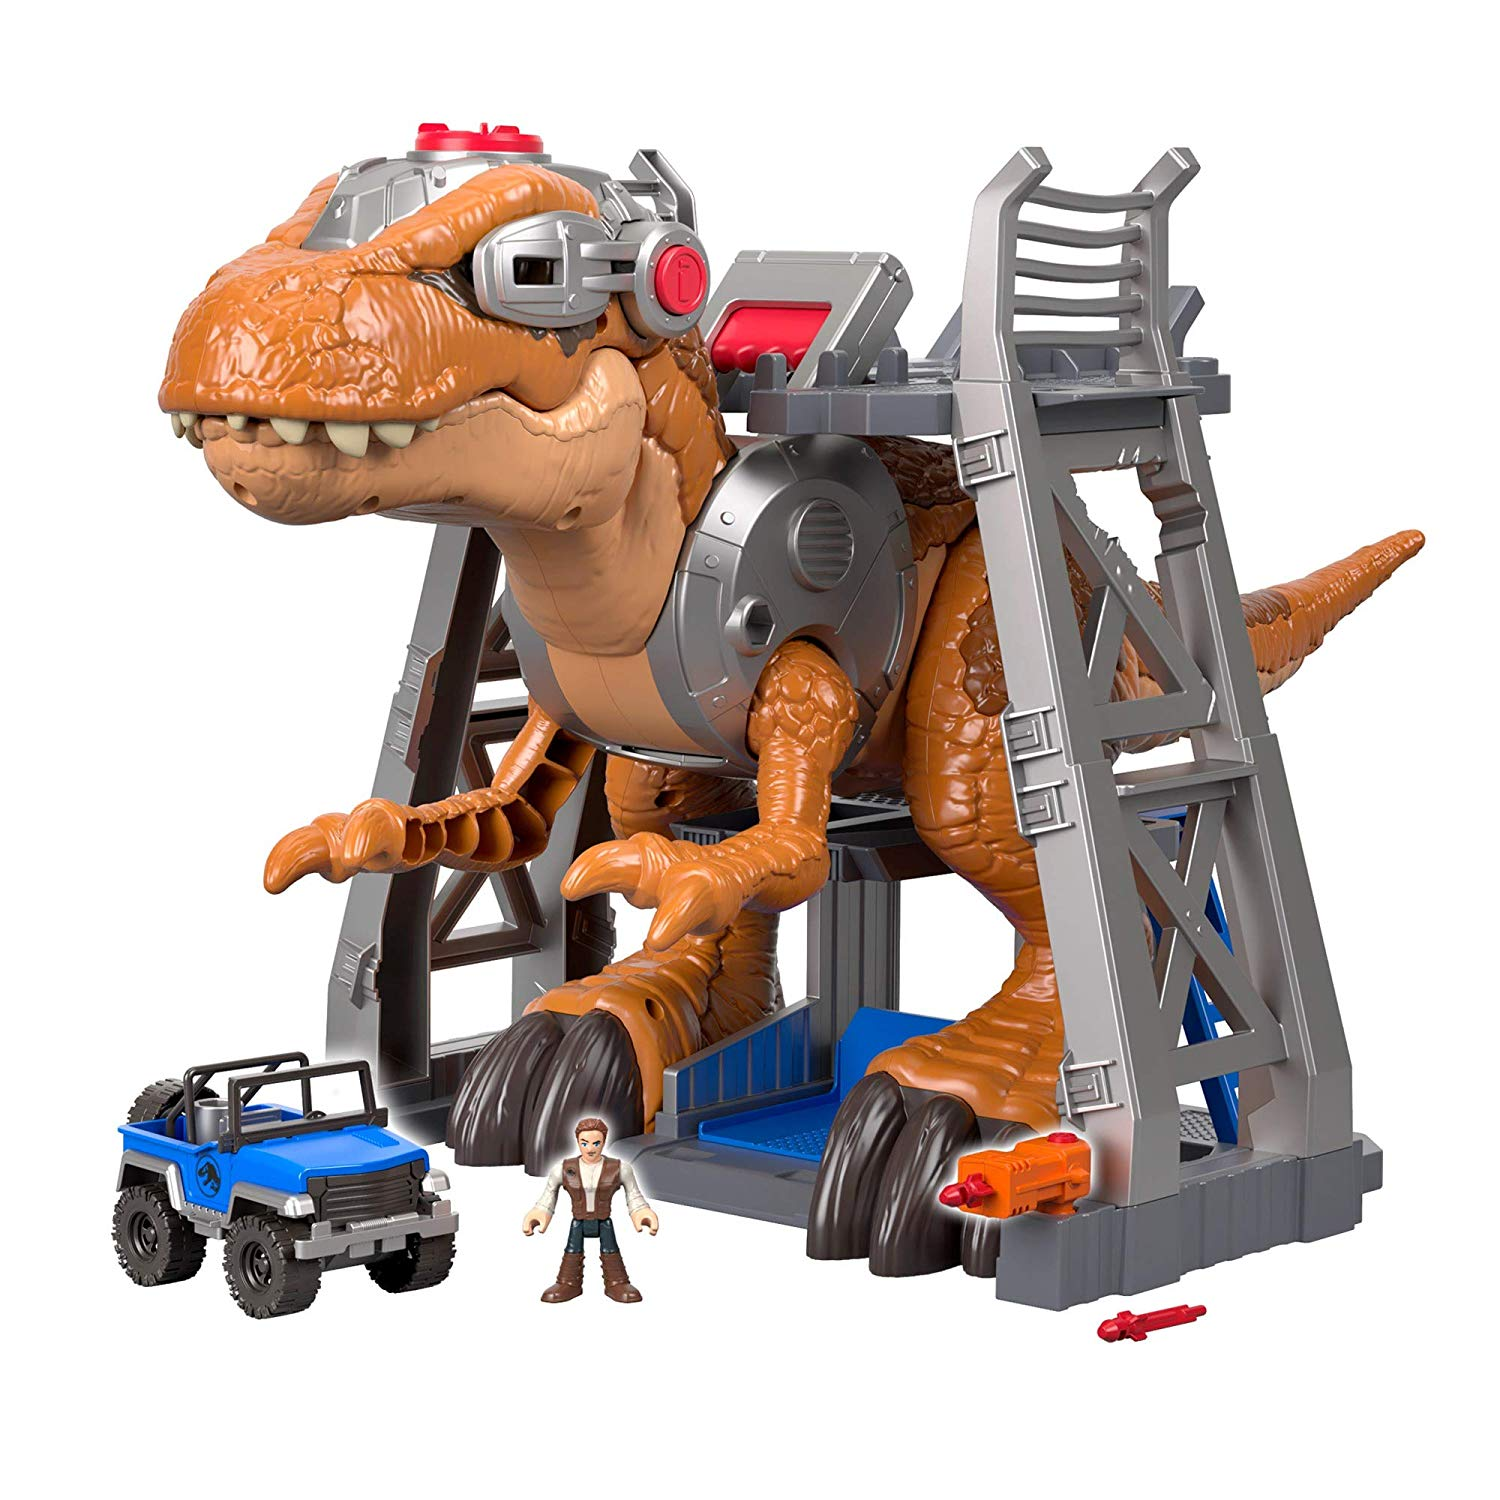 10 Of The Best Dragon Toys For Kids Reviews In 2021 11